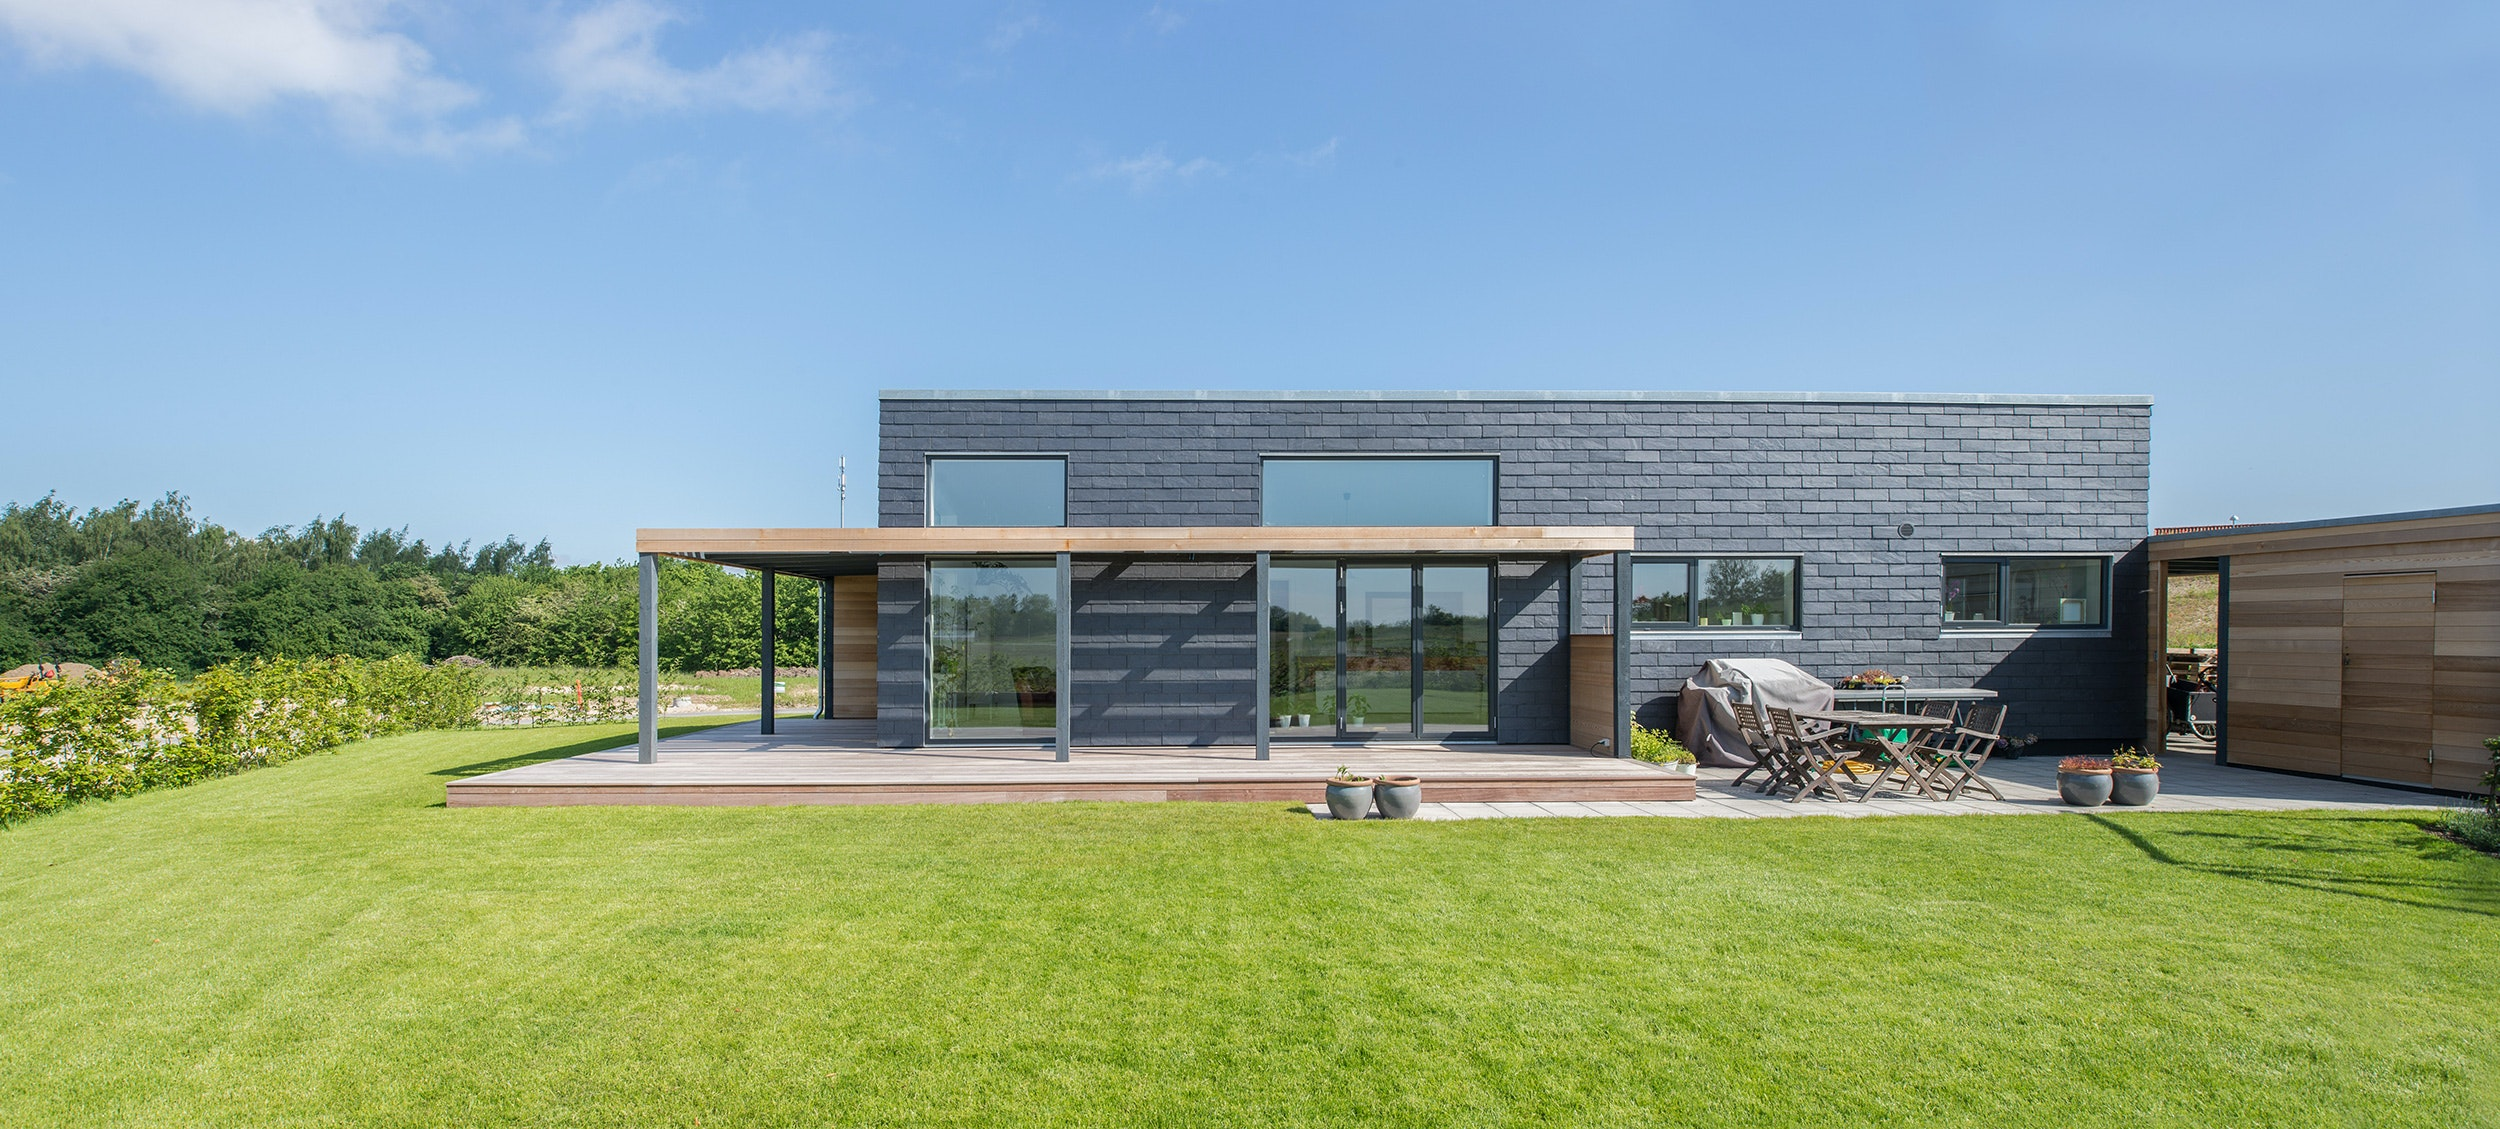 In Scandinavian Design, Itu0027s The Little Things That Count. When This Danish  Family Wanted To Design And Build Their Own Home, They Wanted All The  Little ...